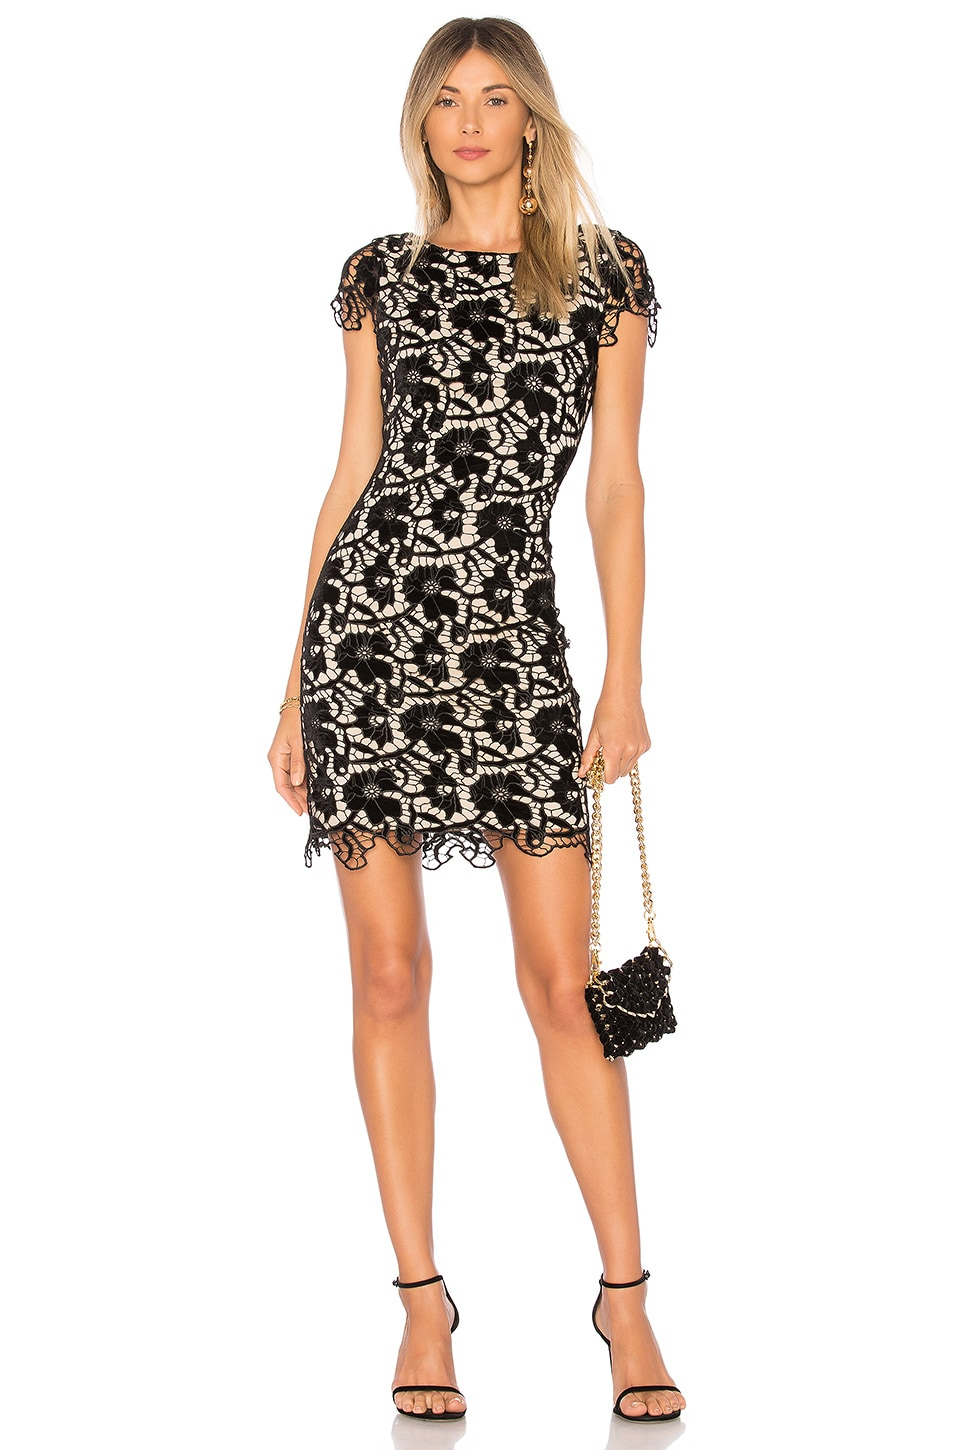 Alice + Olivia Clover Dress in Black & Sesame